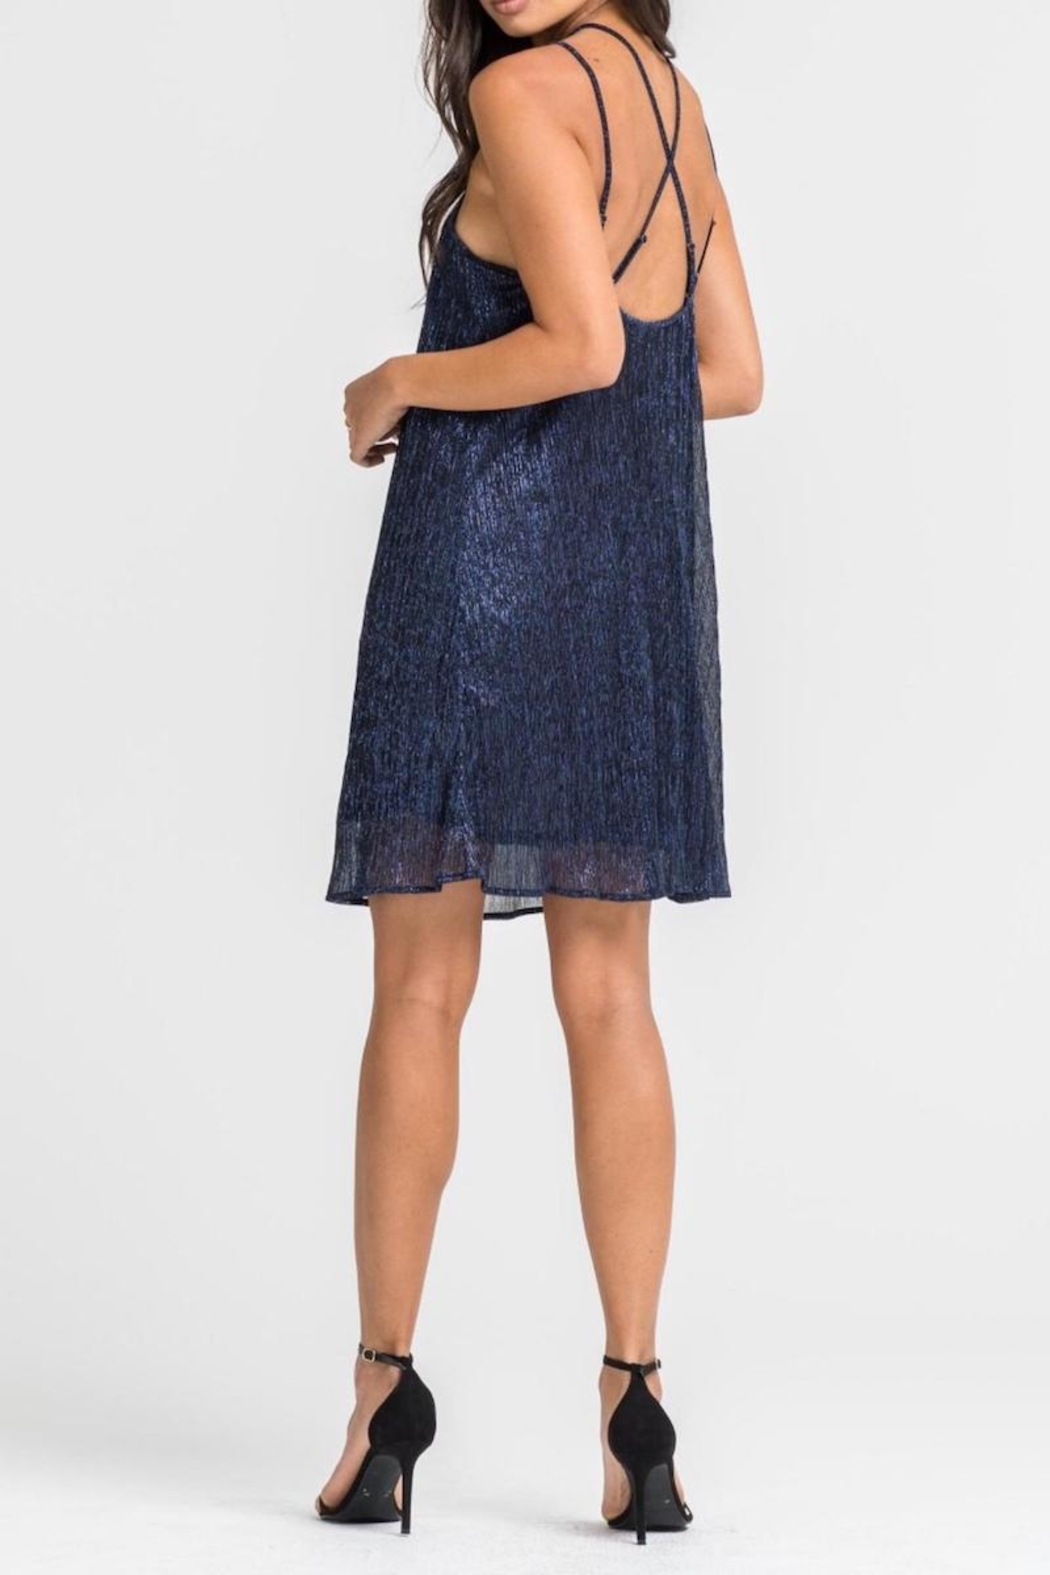 Lush Clothing  Shimmery Cocktail Dress - Front Full Image